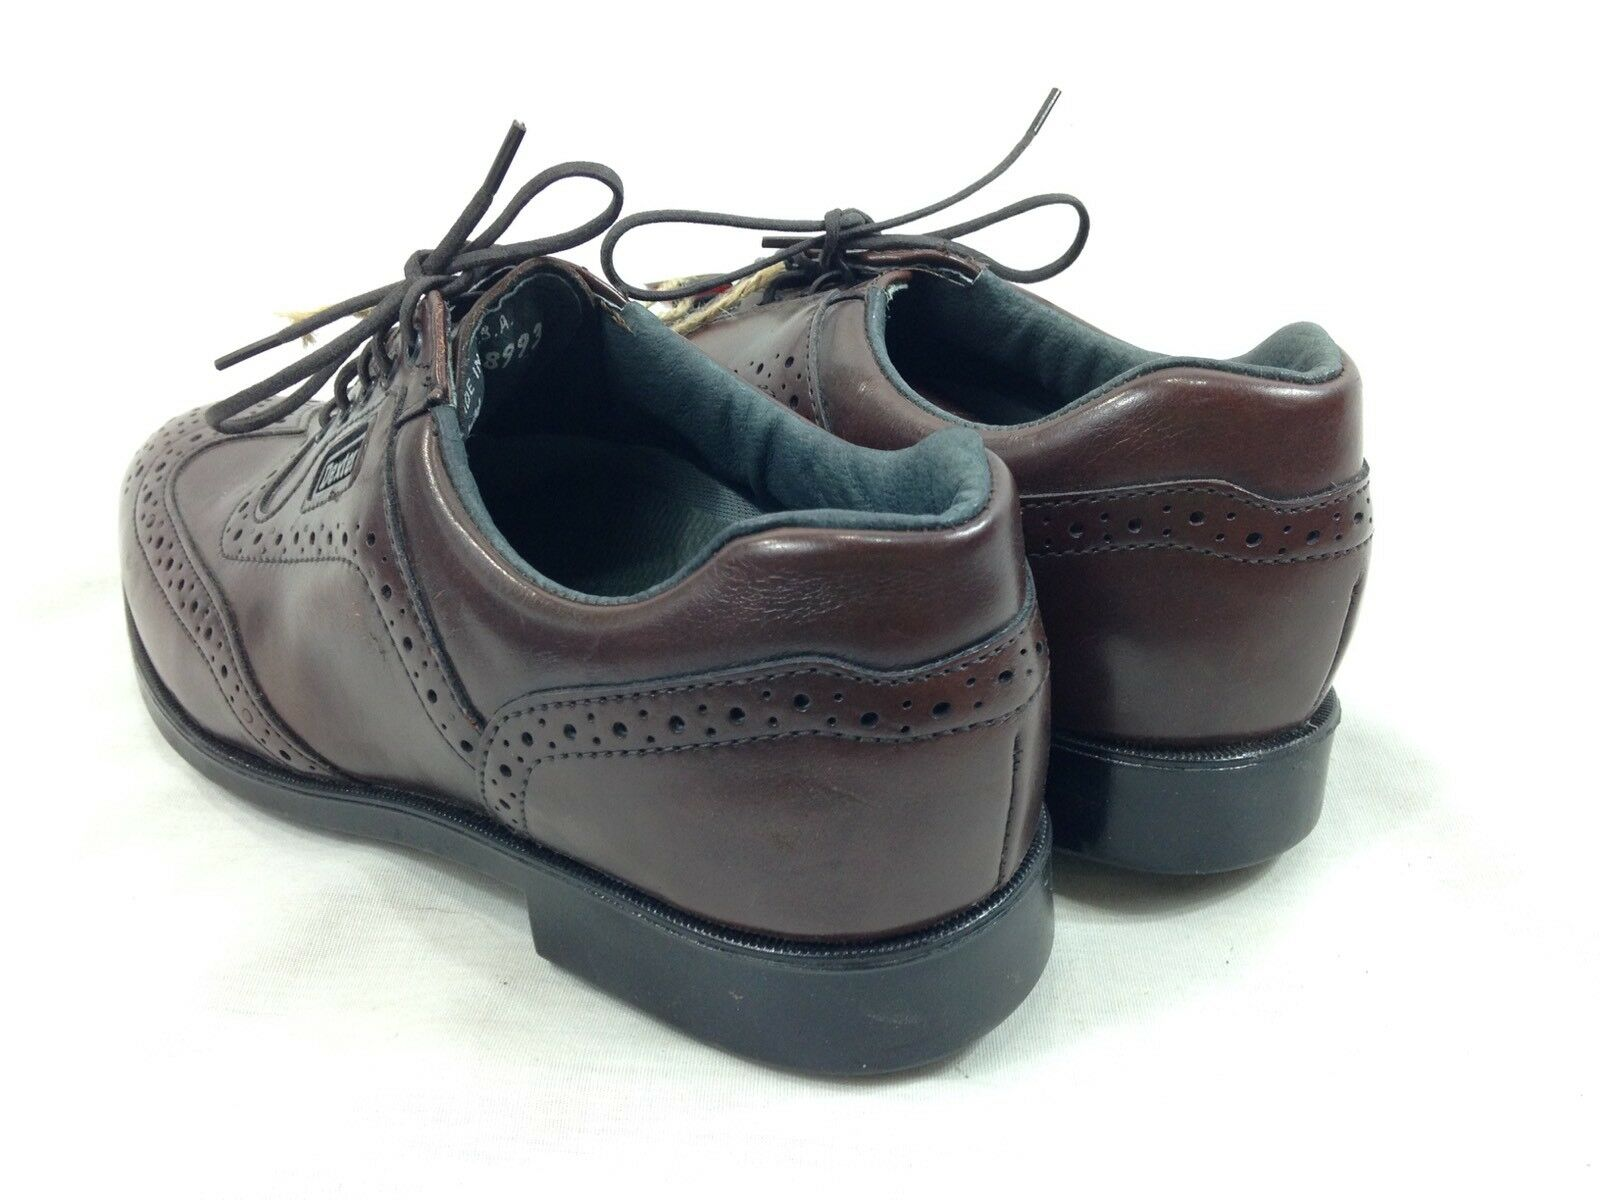 NEW Dexter Golf Schuhes Cleats Men 7 WW Braun Loafers Up Wing Tip Oxfords Lace Up Loafers USA 550a2e